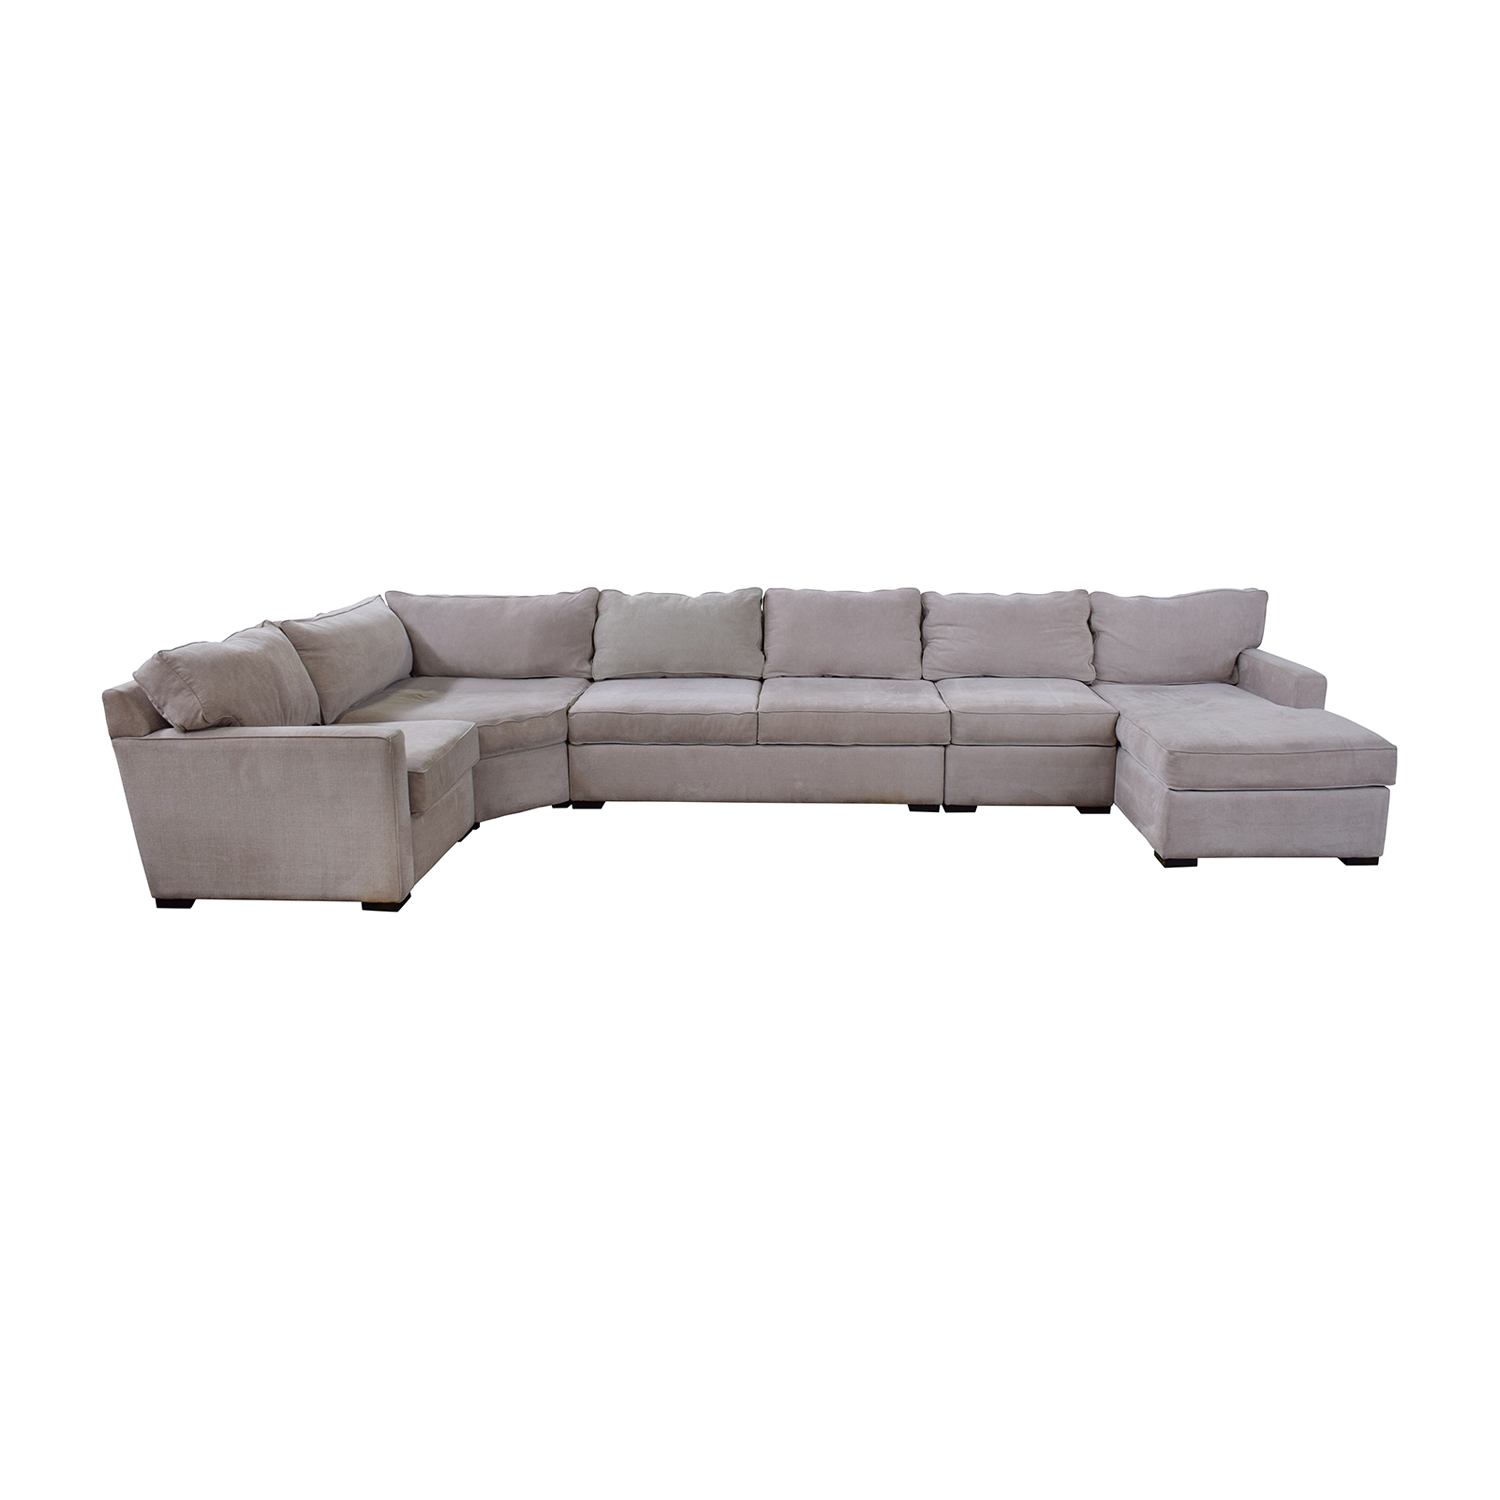 Macy's Macy's Radley Fabric Chaise Sectional tan